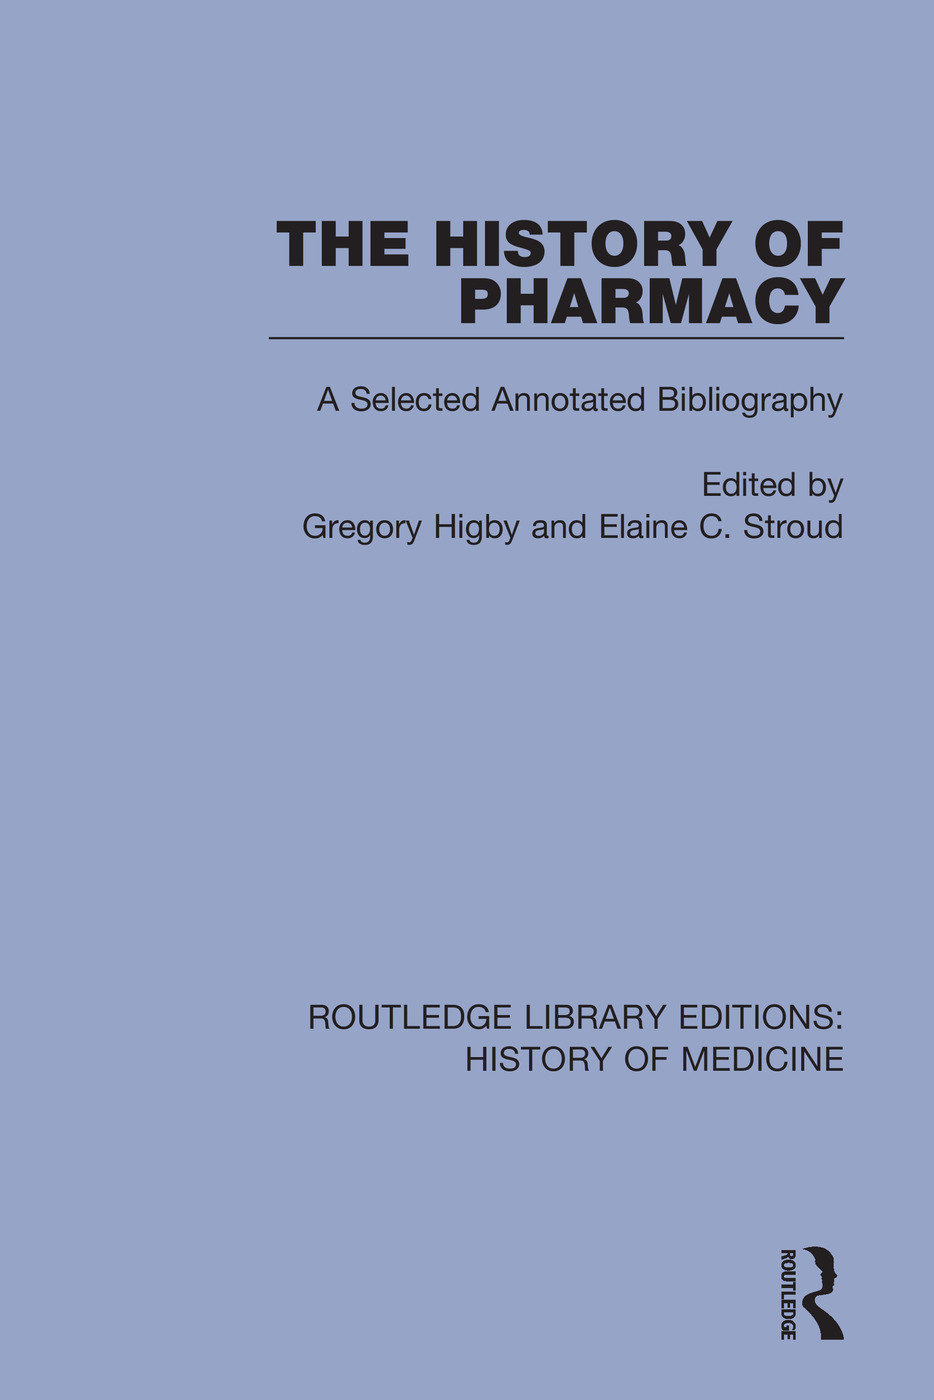 The History of Pharmacy: A Selected Annotated Bibliography book cover